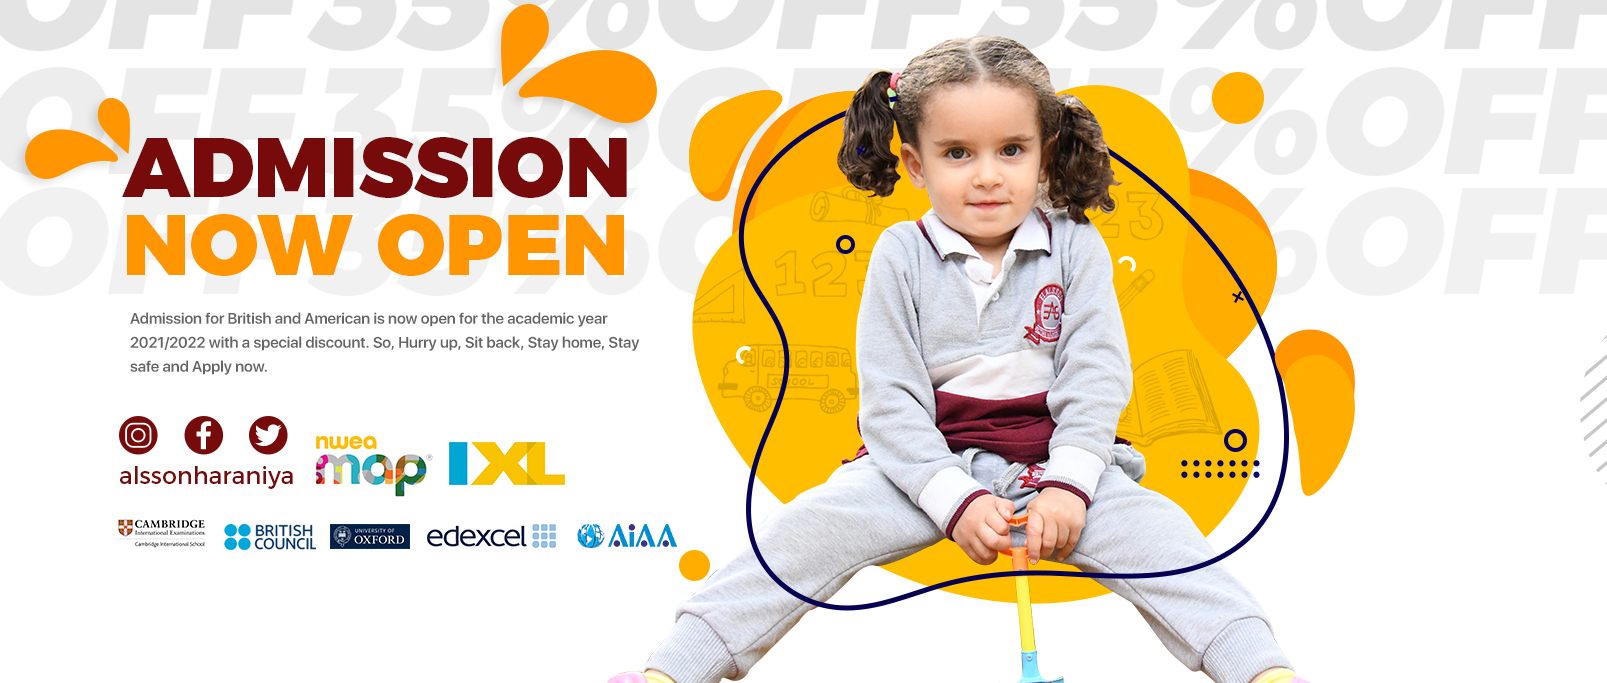 El Alsson School - Harraniya admission is open